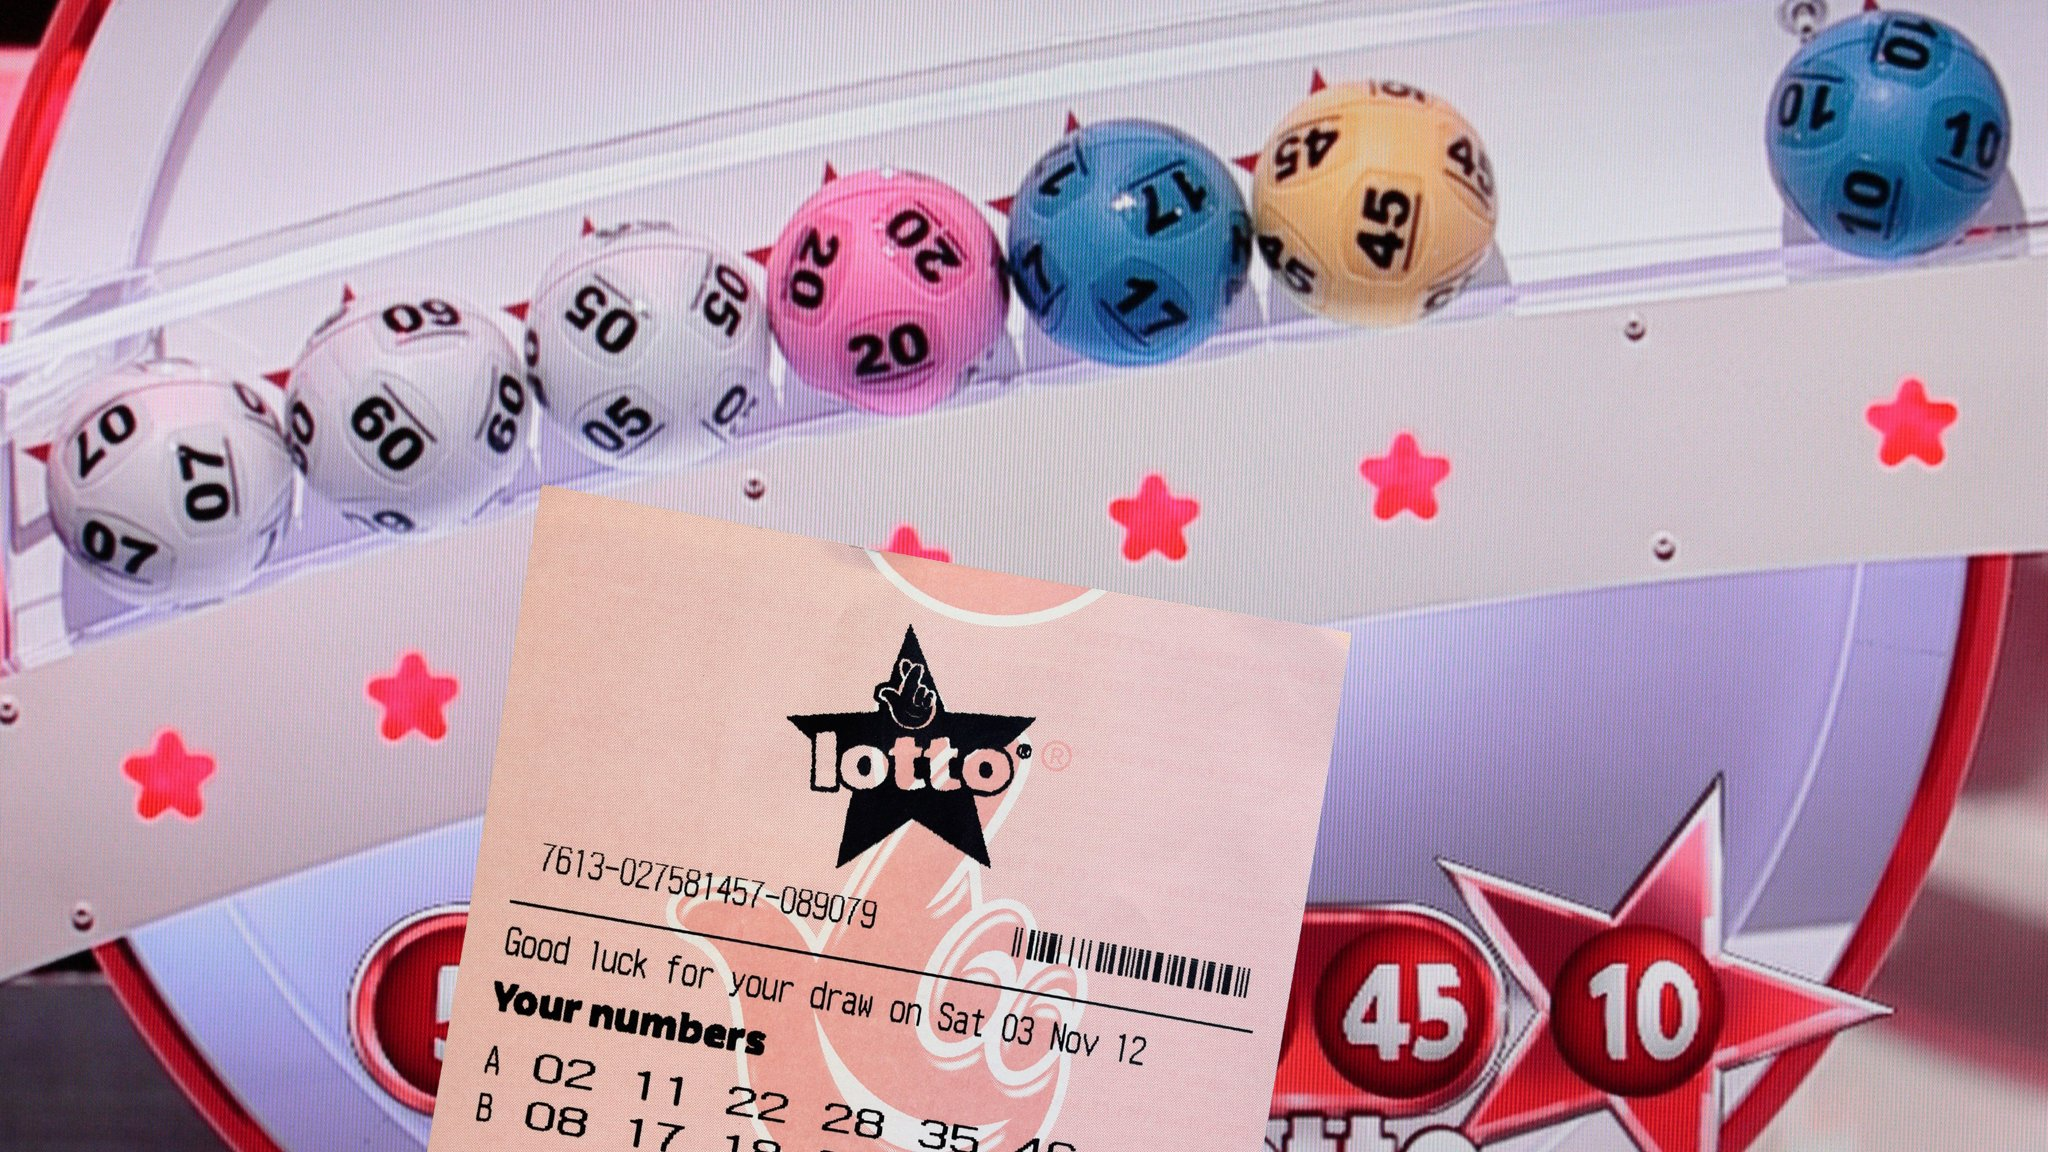 National Lottery operator looks to change its luck